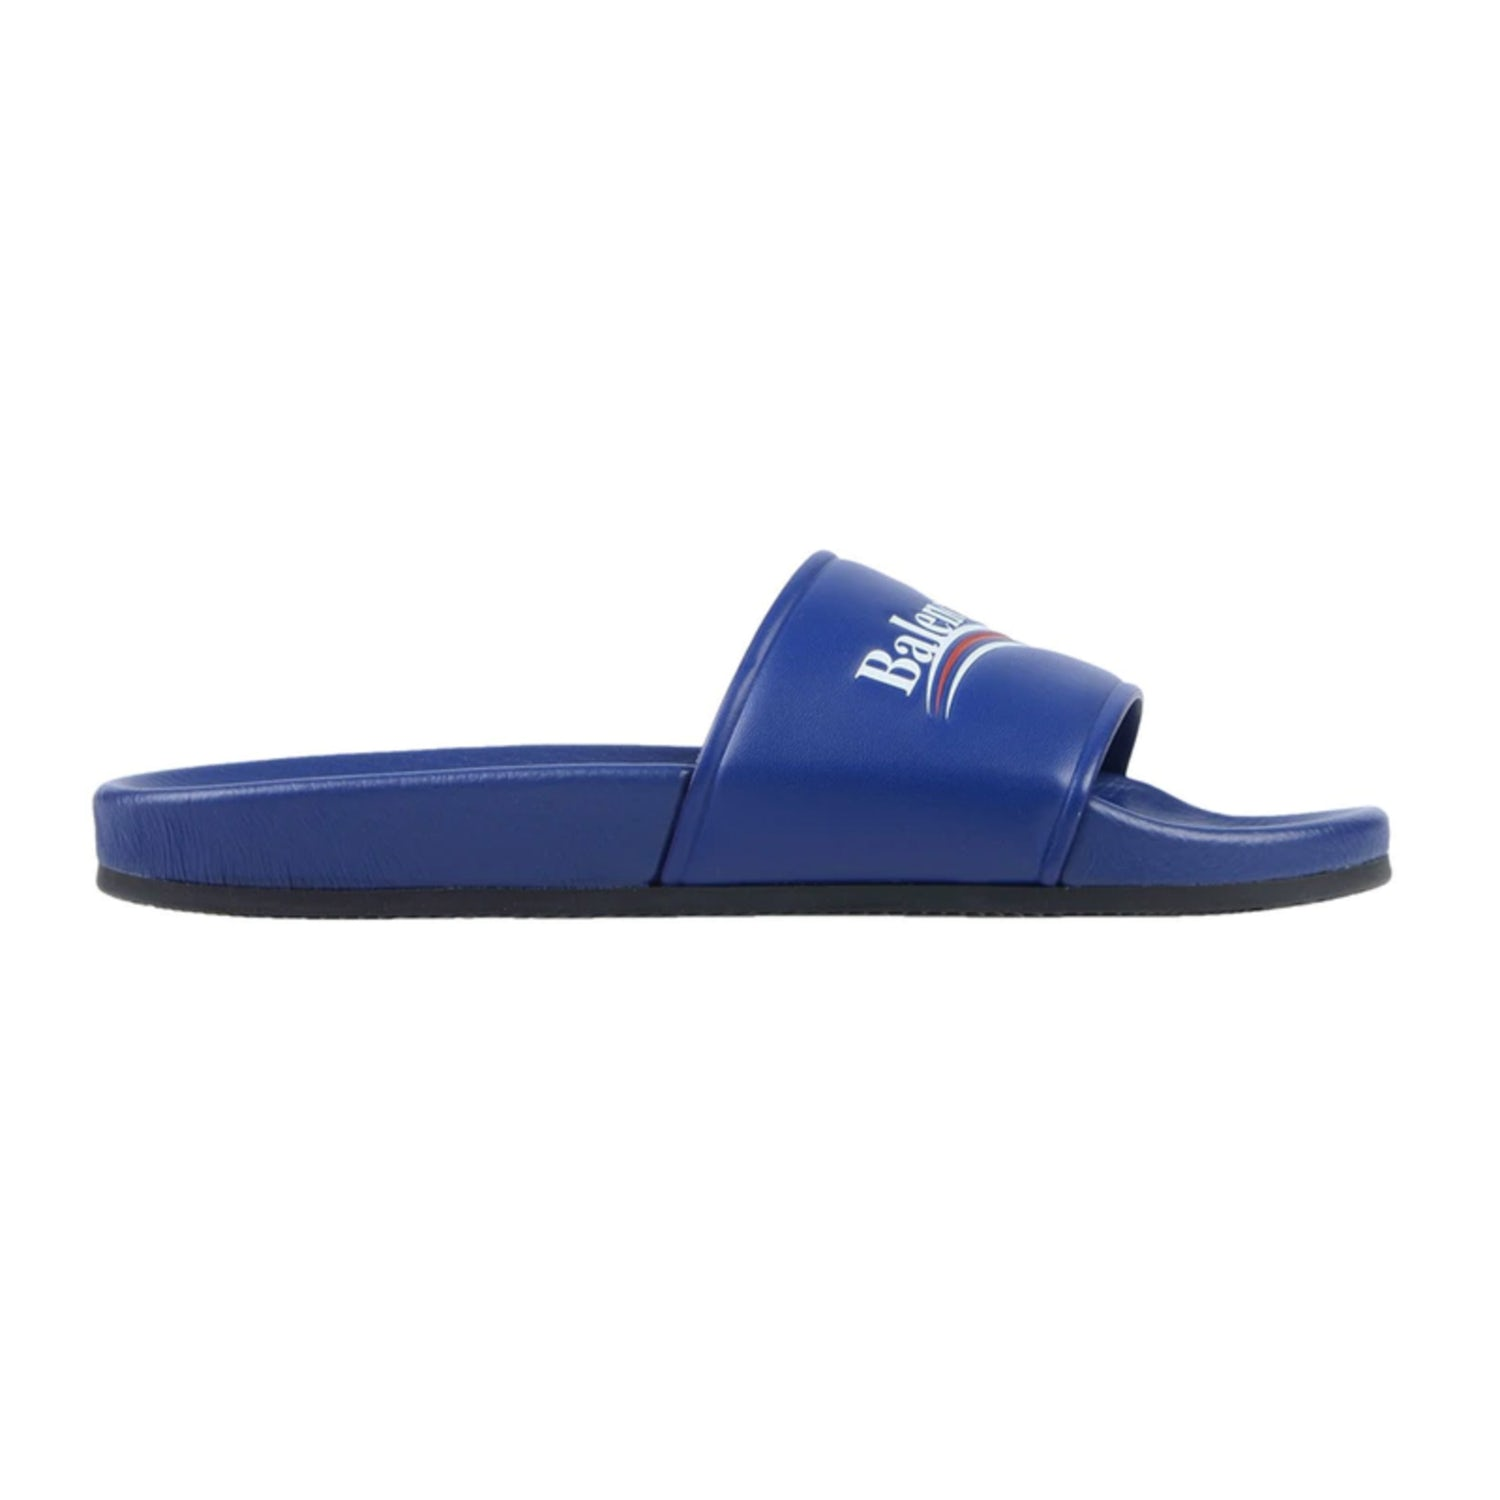 Balenciaga Pool Slides 0